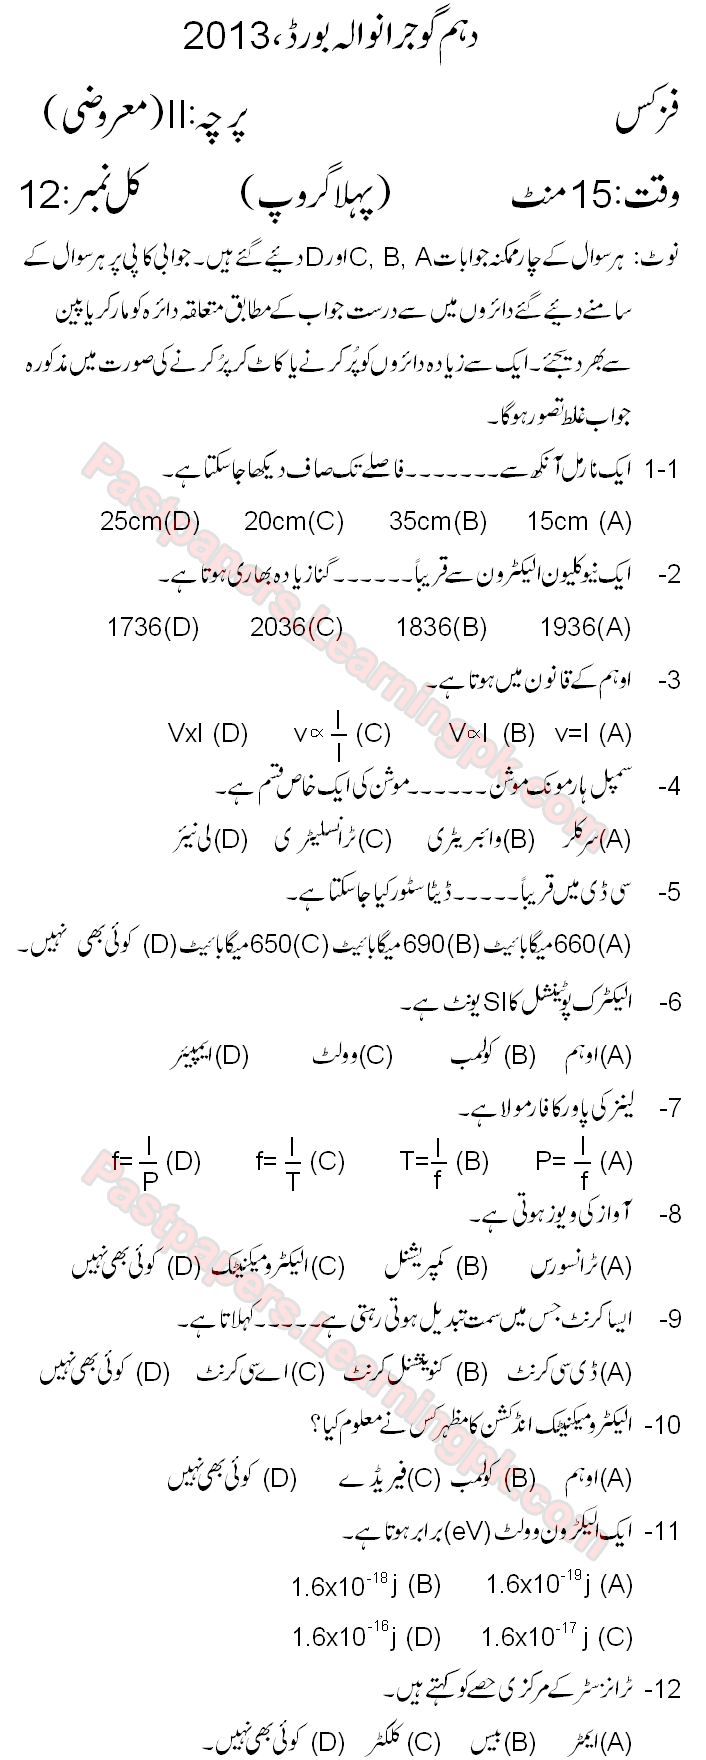 Gujranwala Board 2013 10th Class Physics 5 Year Old Past Guess Papers